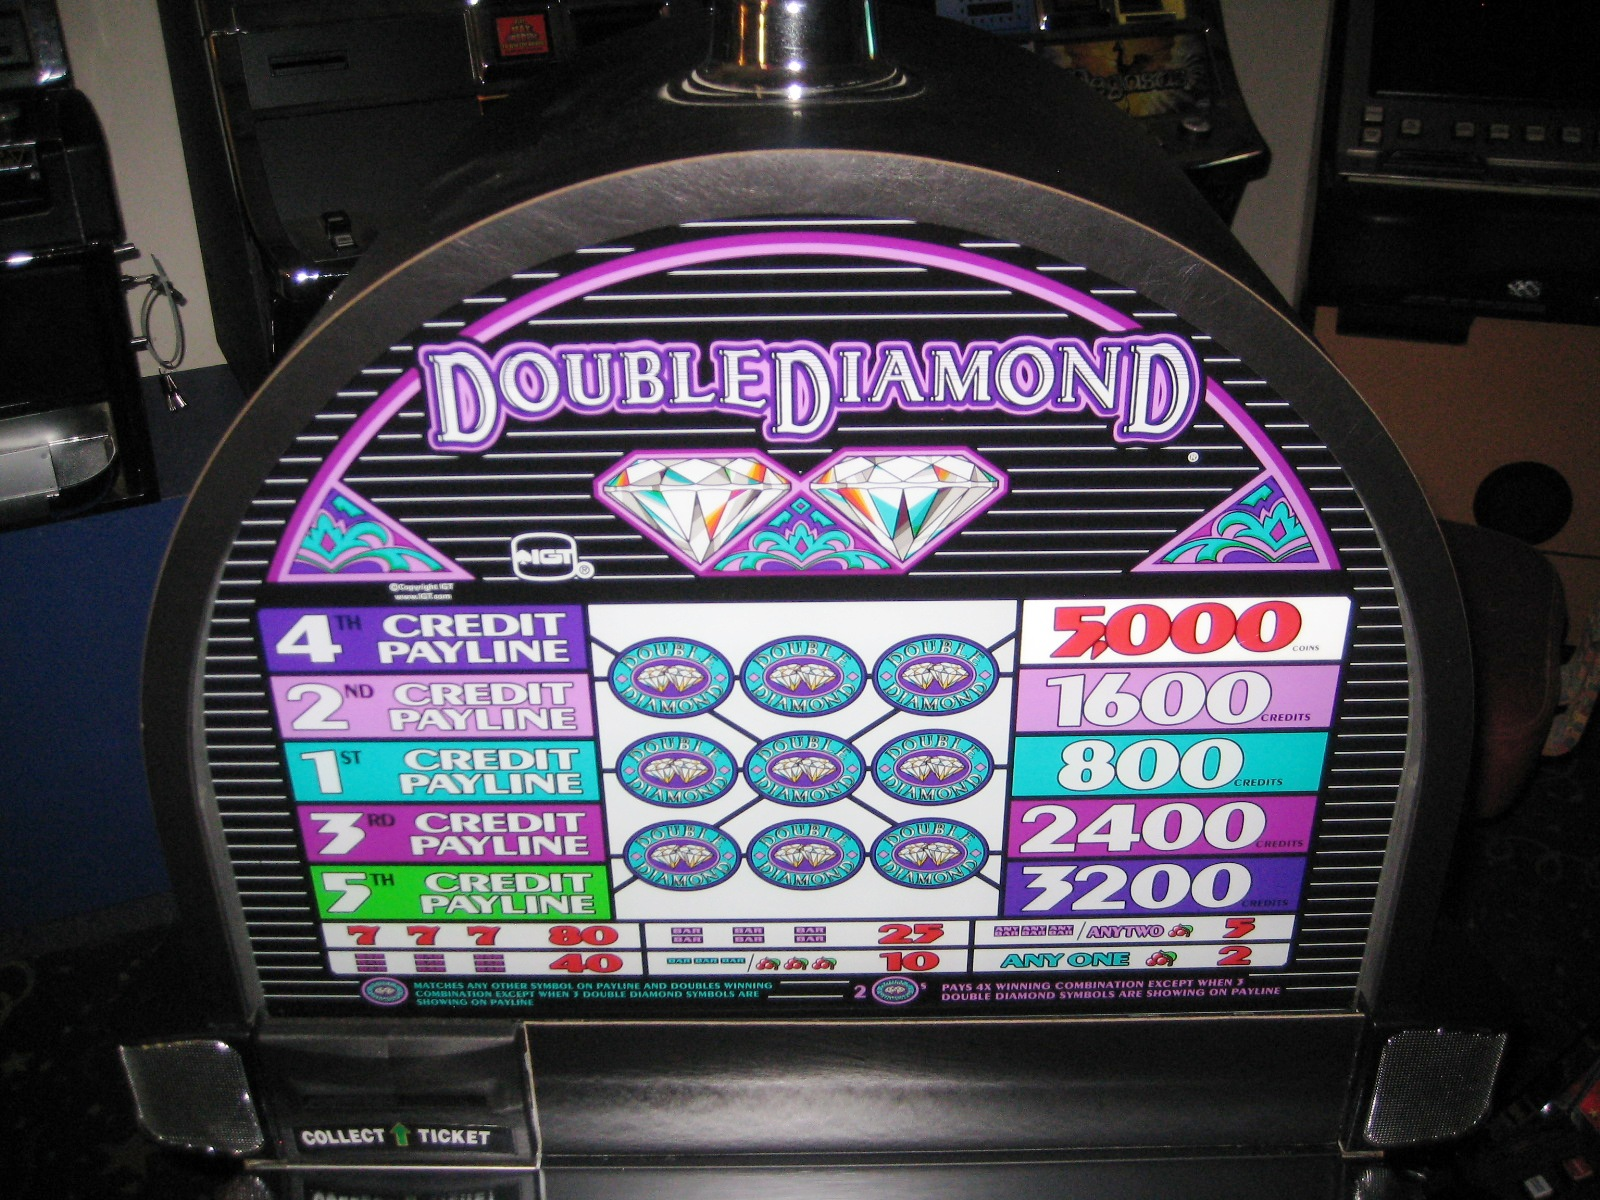 Cherry master slot machine for sale south africa